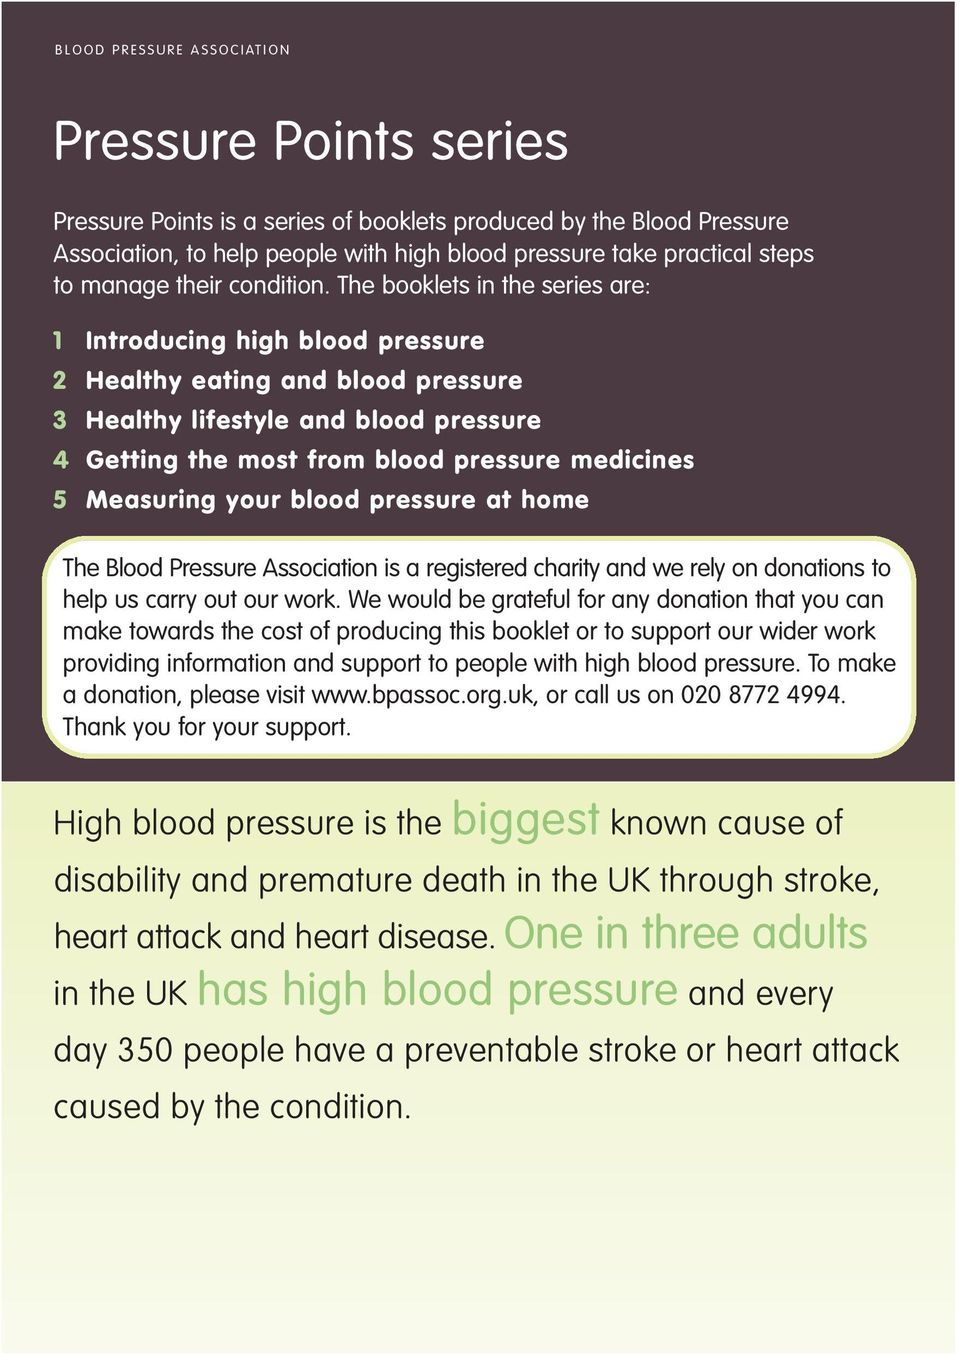 The booklets in the series are: 1 Introducing high blood pressure 2 Healthy eating and blood pressure 3 Healthy lifestyle and blood pressure 4 Getting the most from blood pressure medicines 5